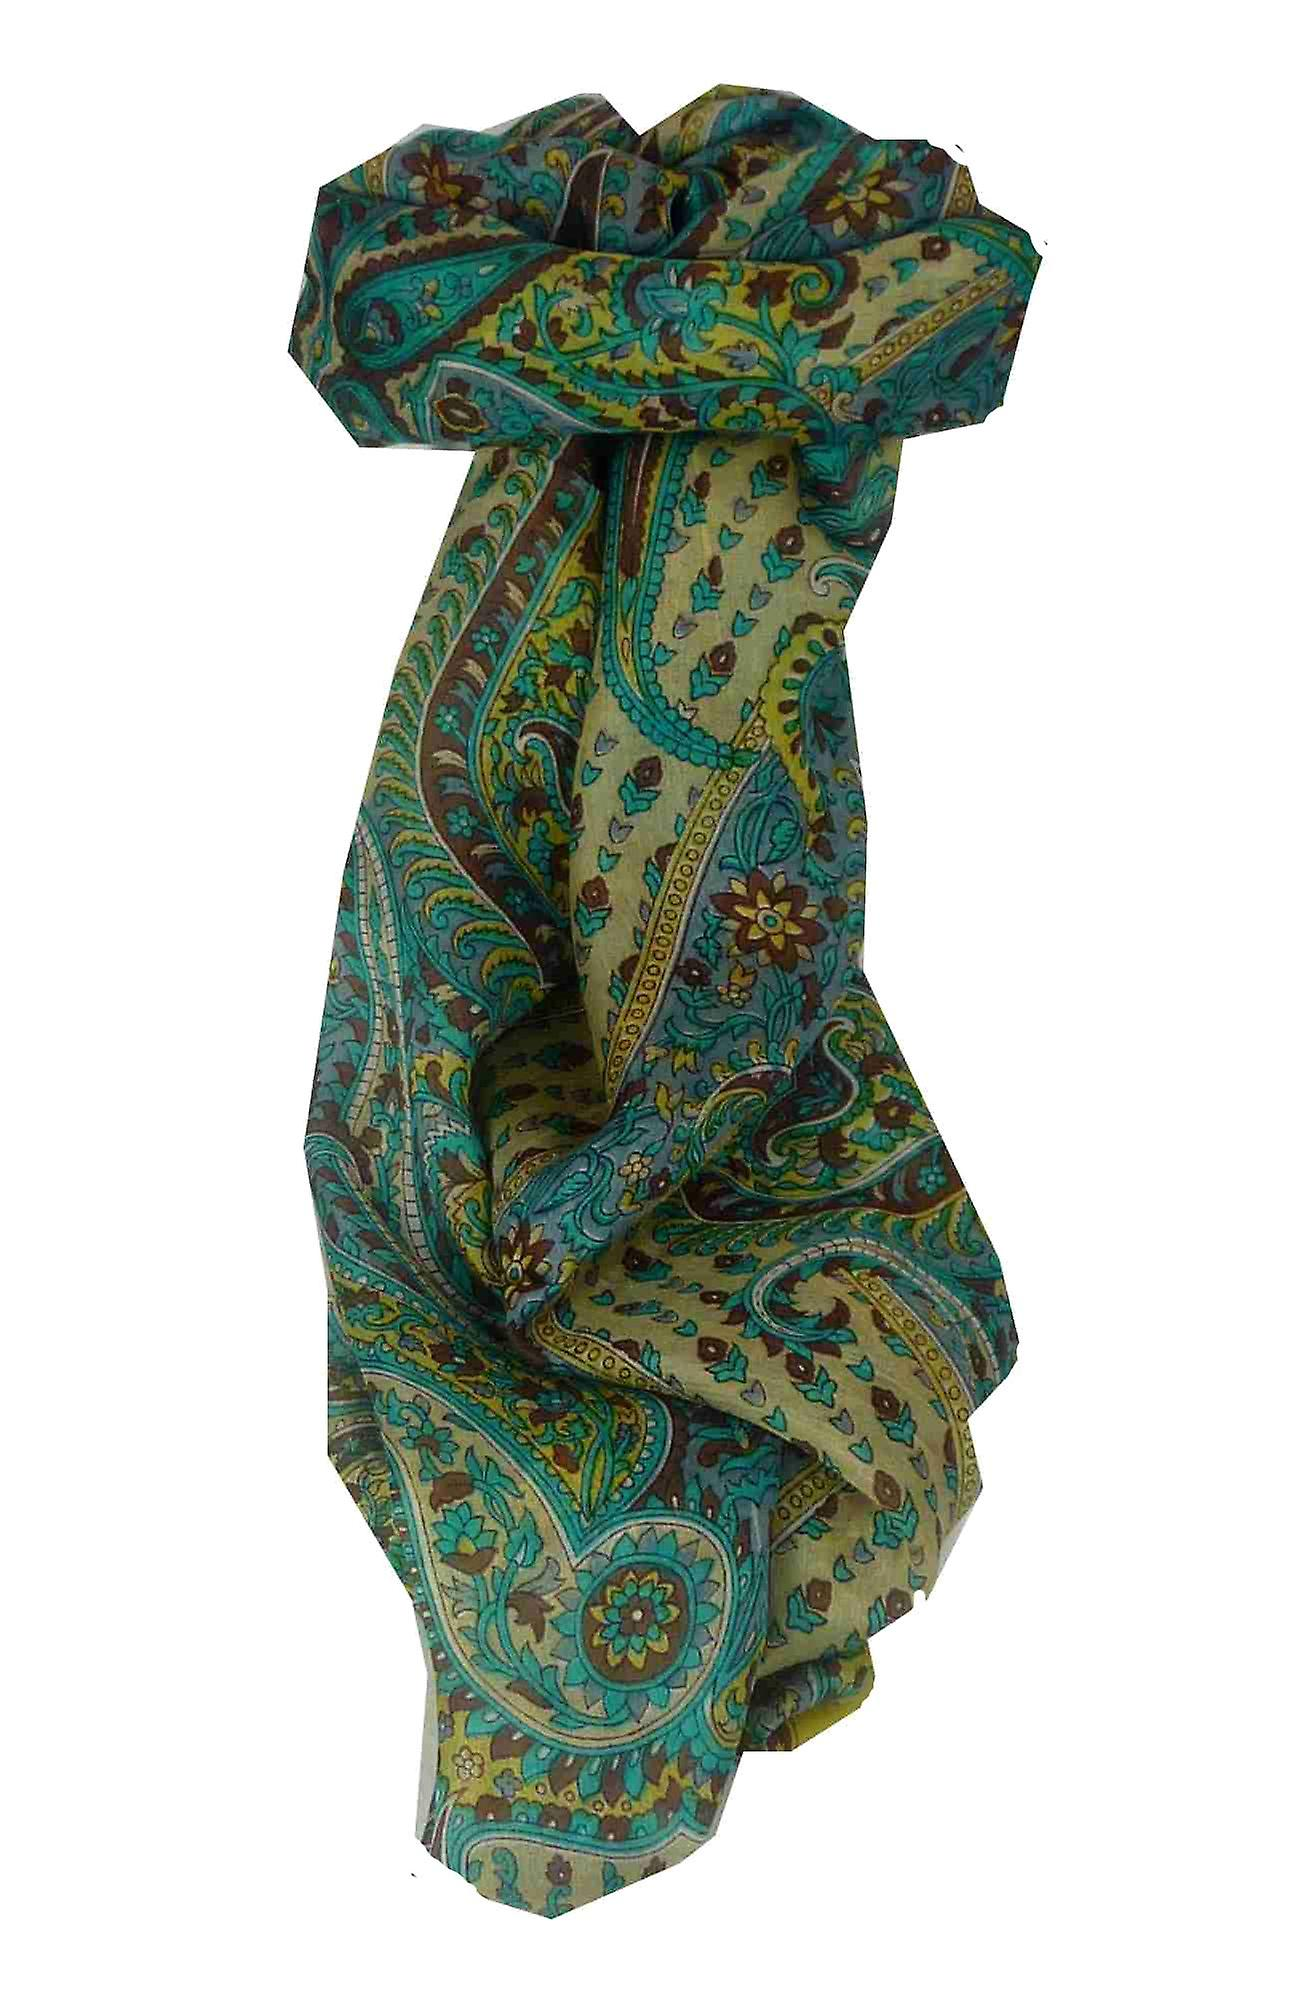 Mulberry Silk Traditional Long Scarf Lexi Cream by Pashmina & Silk